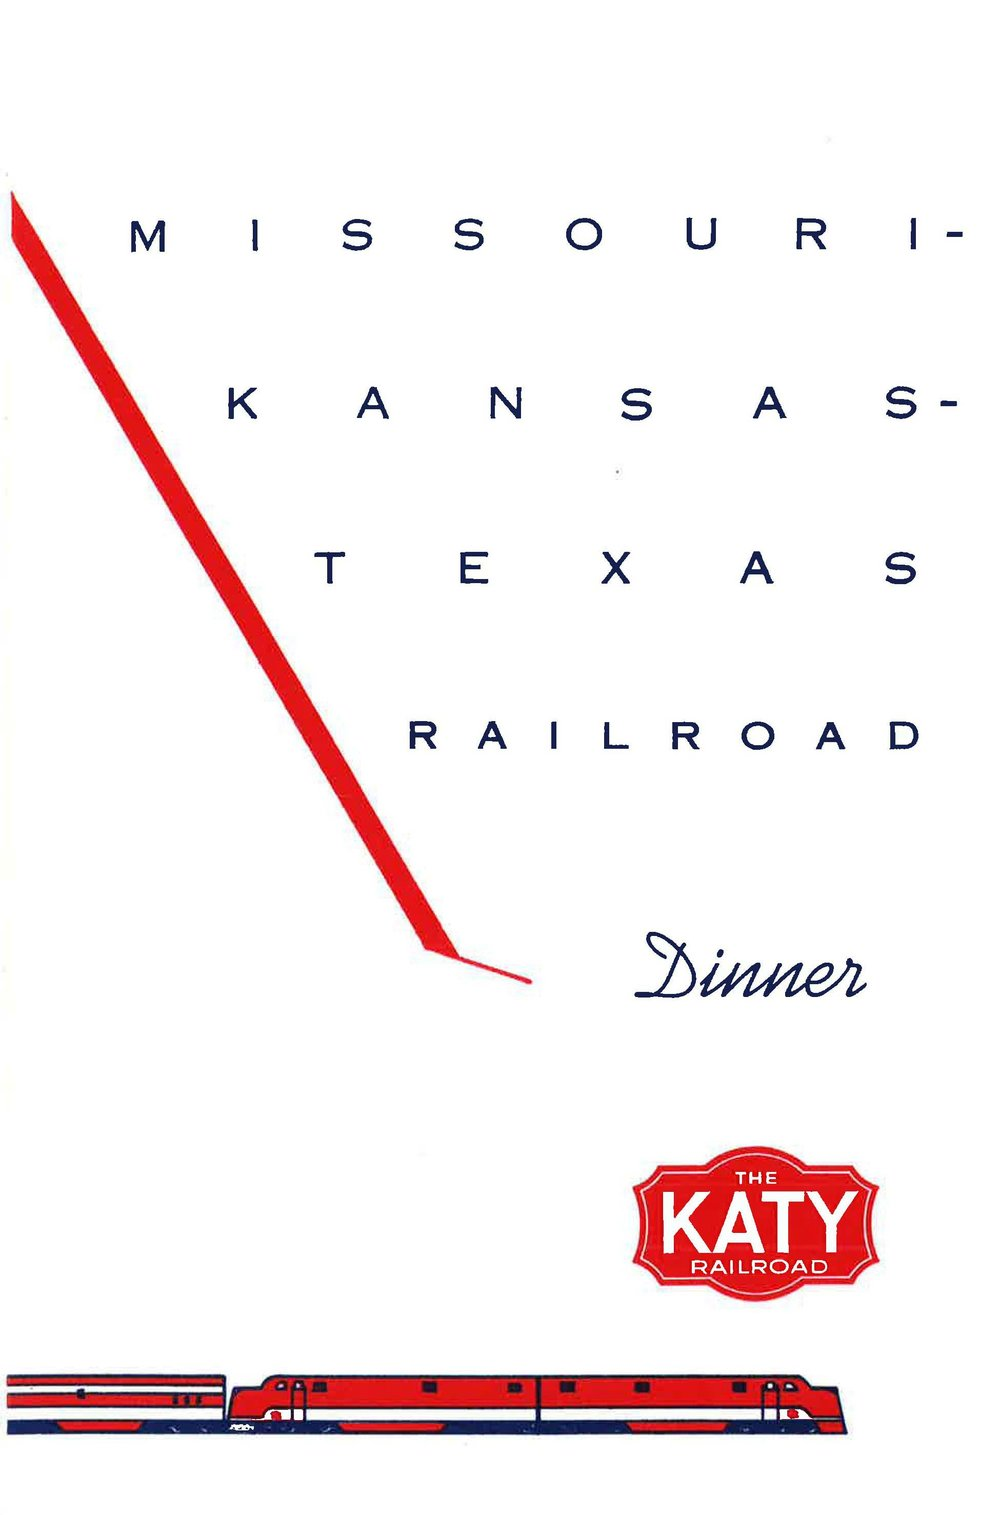 Katy+Railroad+-+MKT++Railroad+Dinner+Menu 1a.jpg